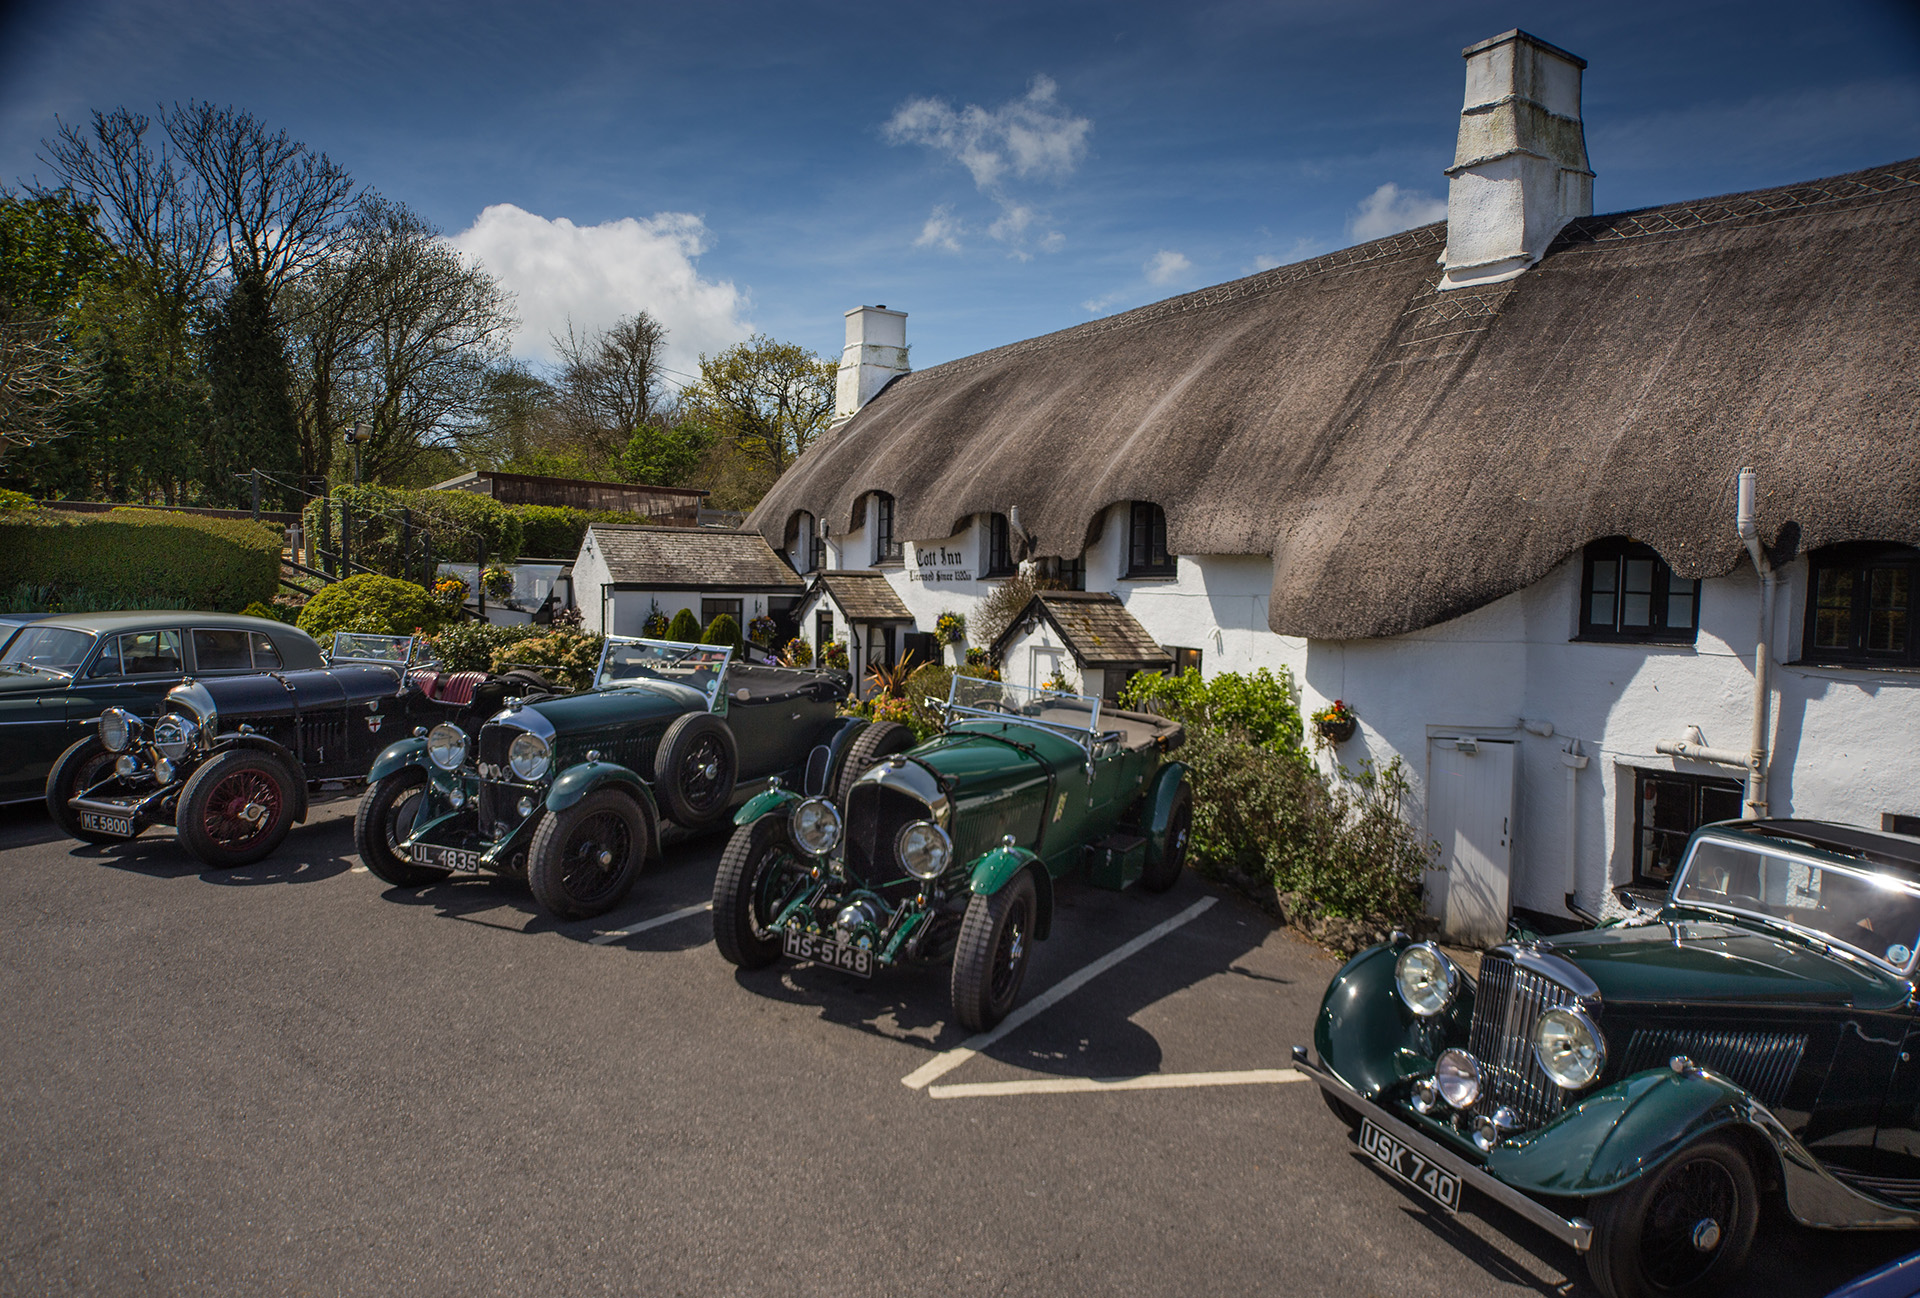 UK Bentley Owners Club annual meeting outside the historic, 14th Century Cott Inn in Dartington, South Devon, England